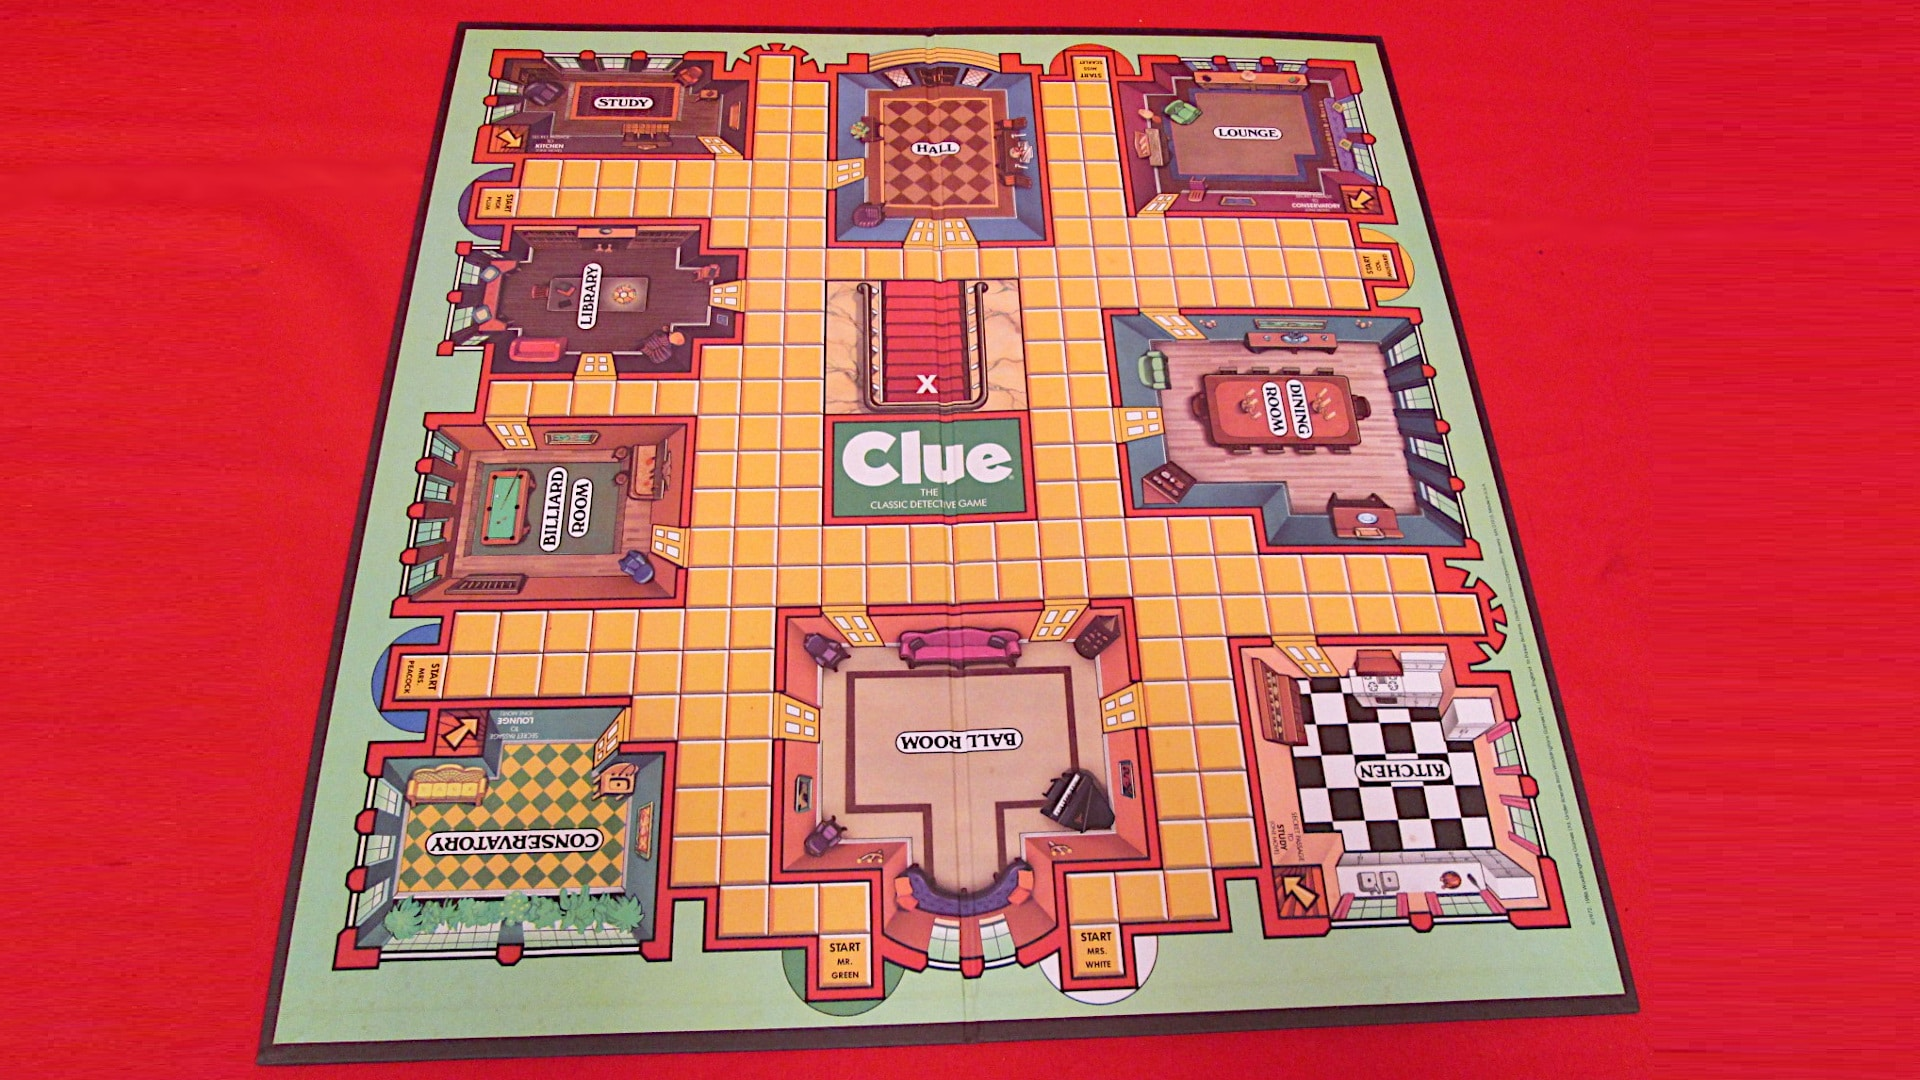 Clue Game Rules and How to Play Guide